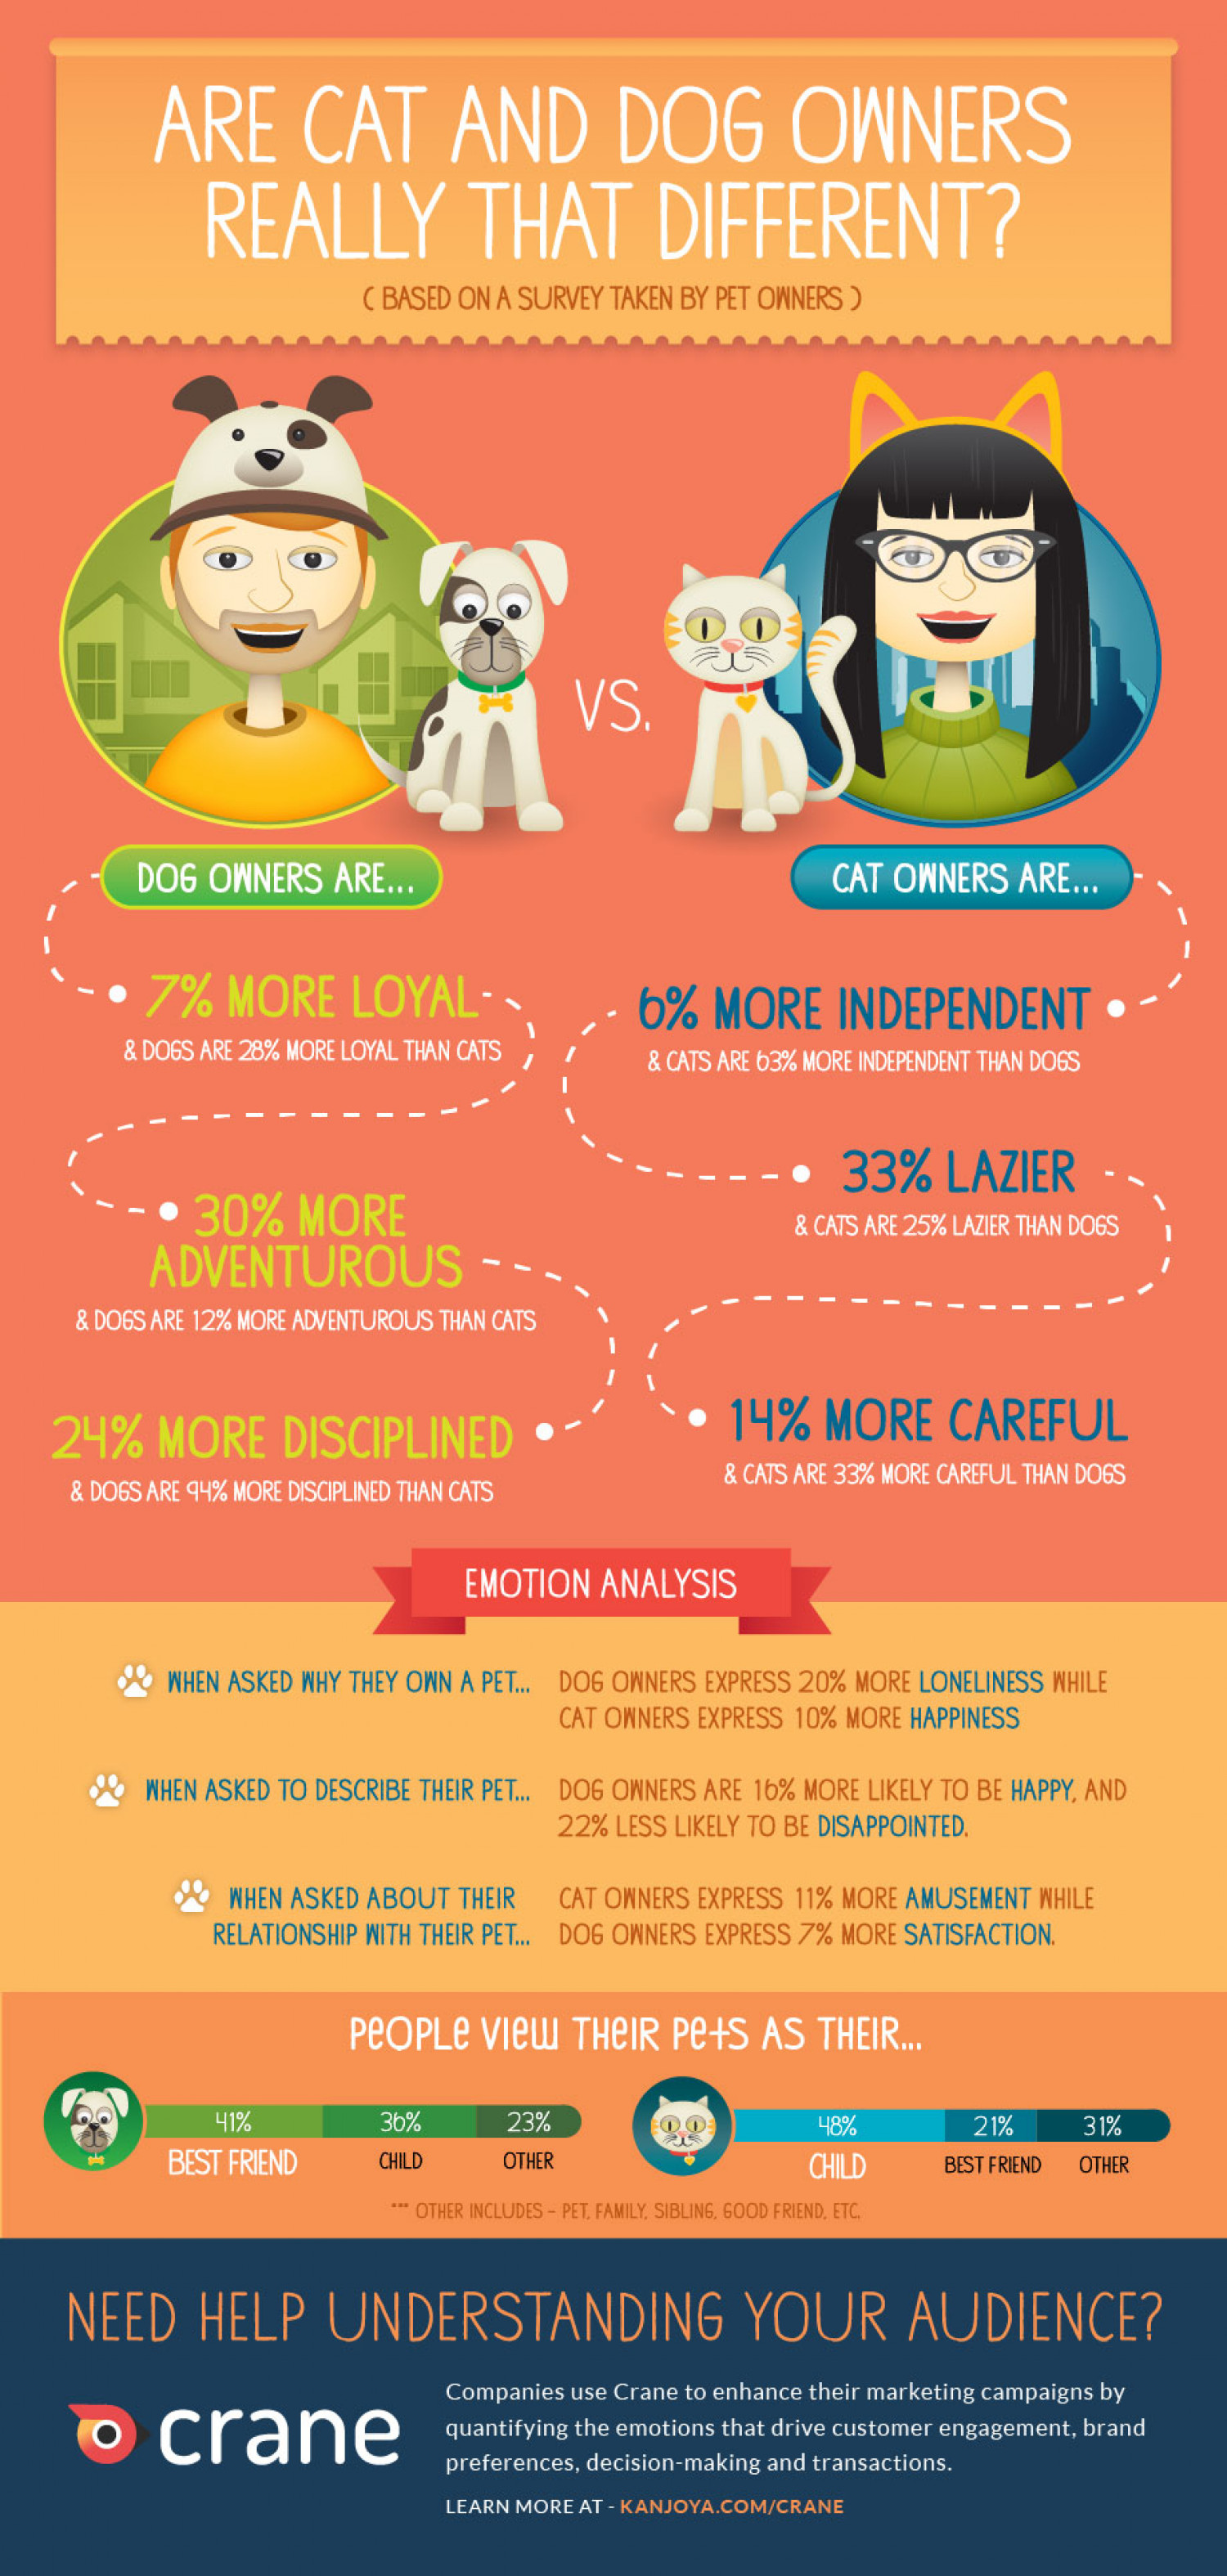 Are Cat and Dog Owners Really That Different? Infographic